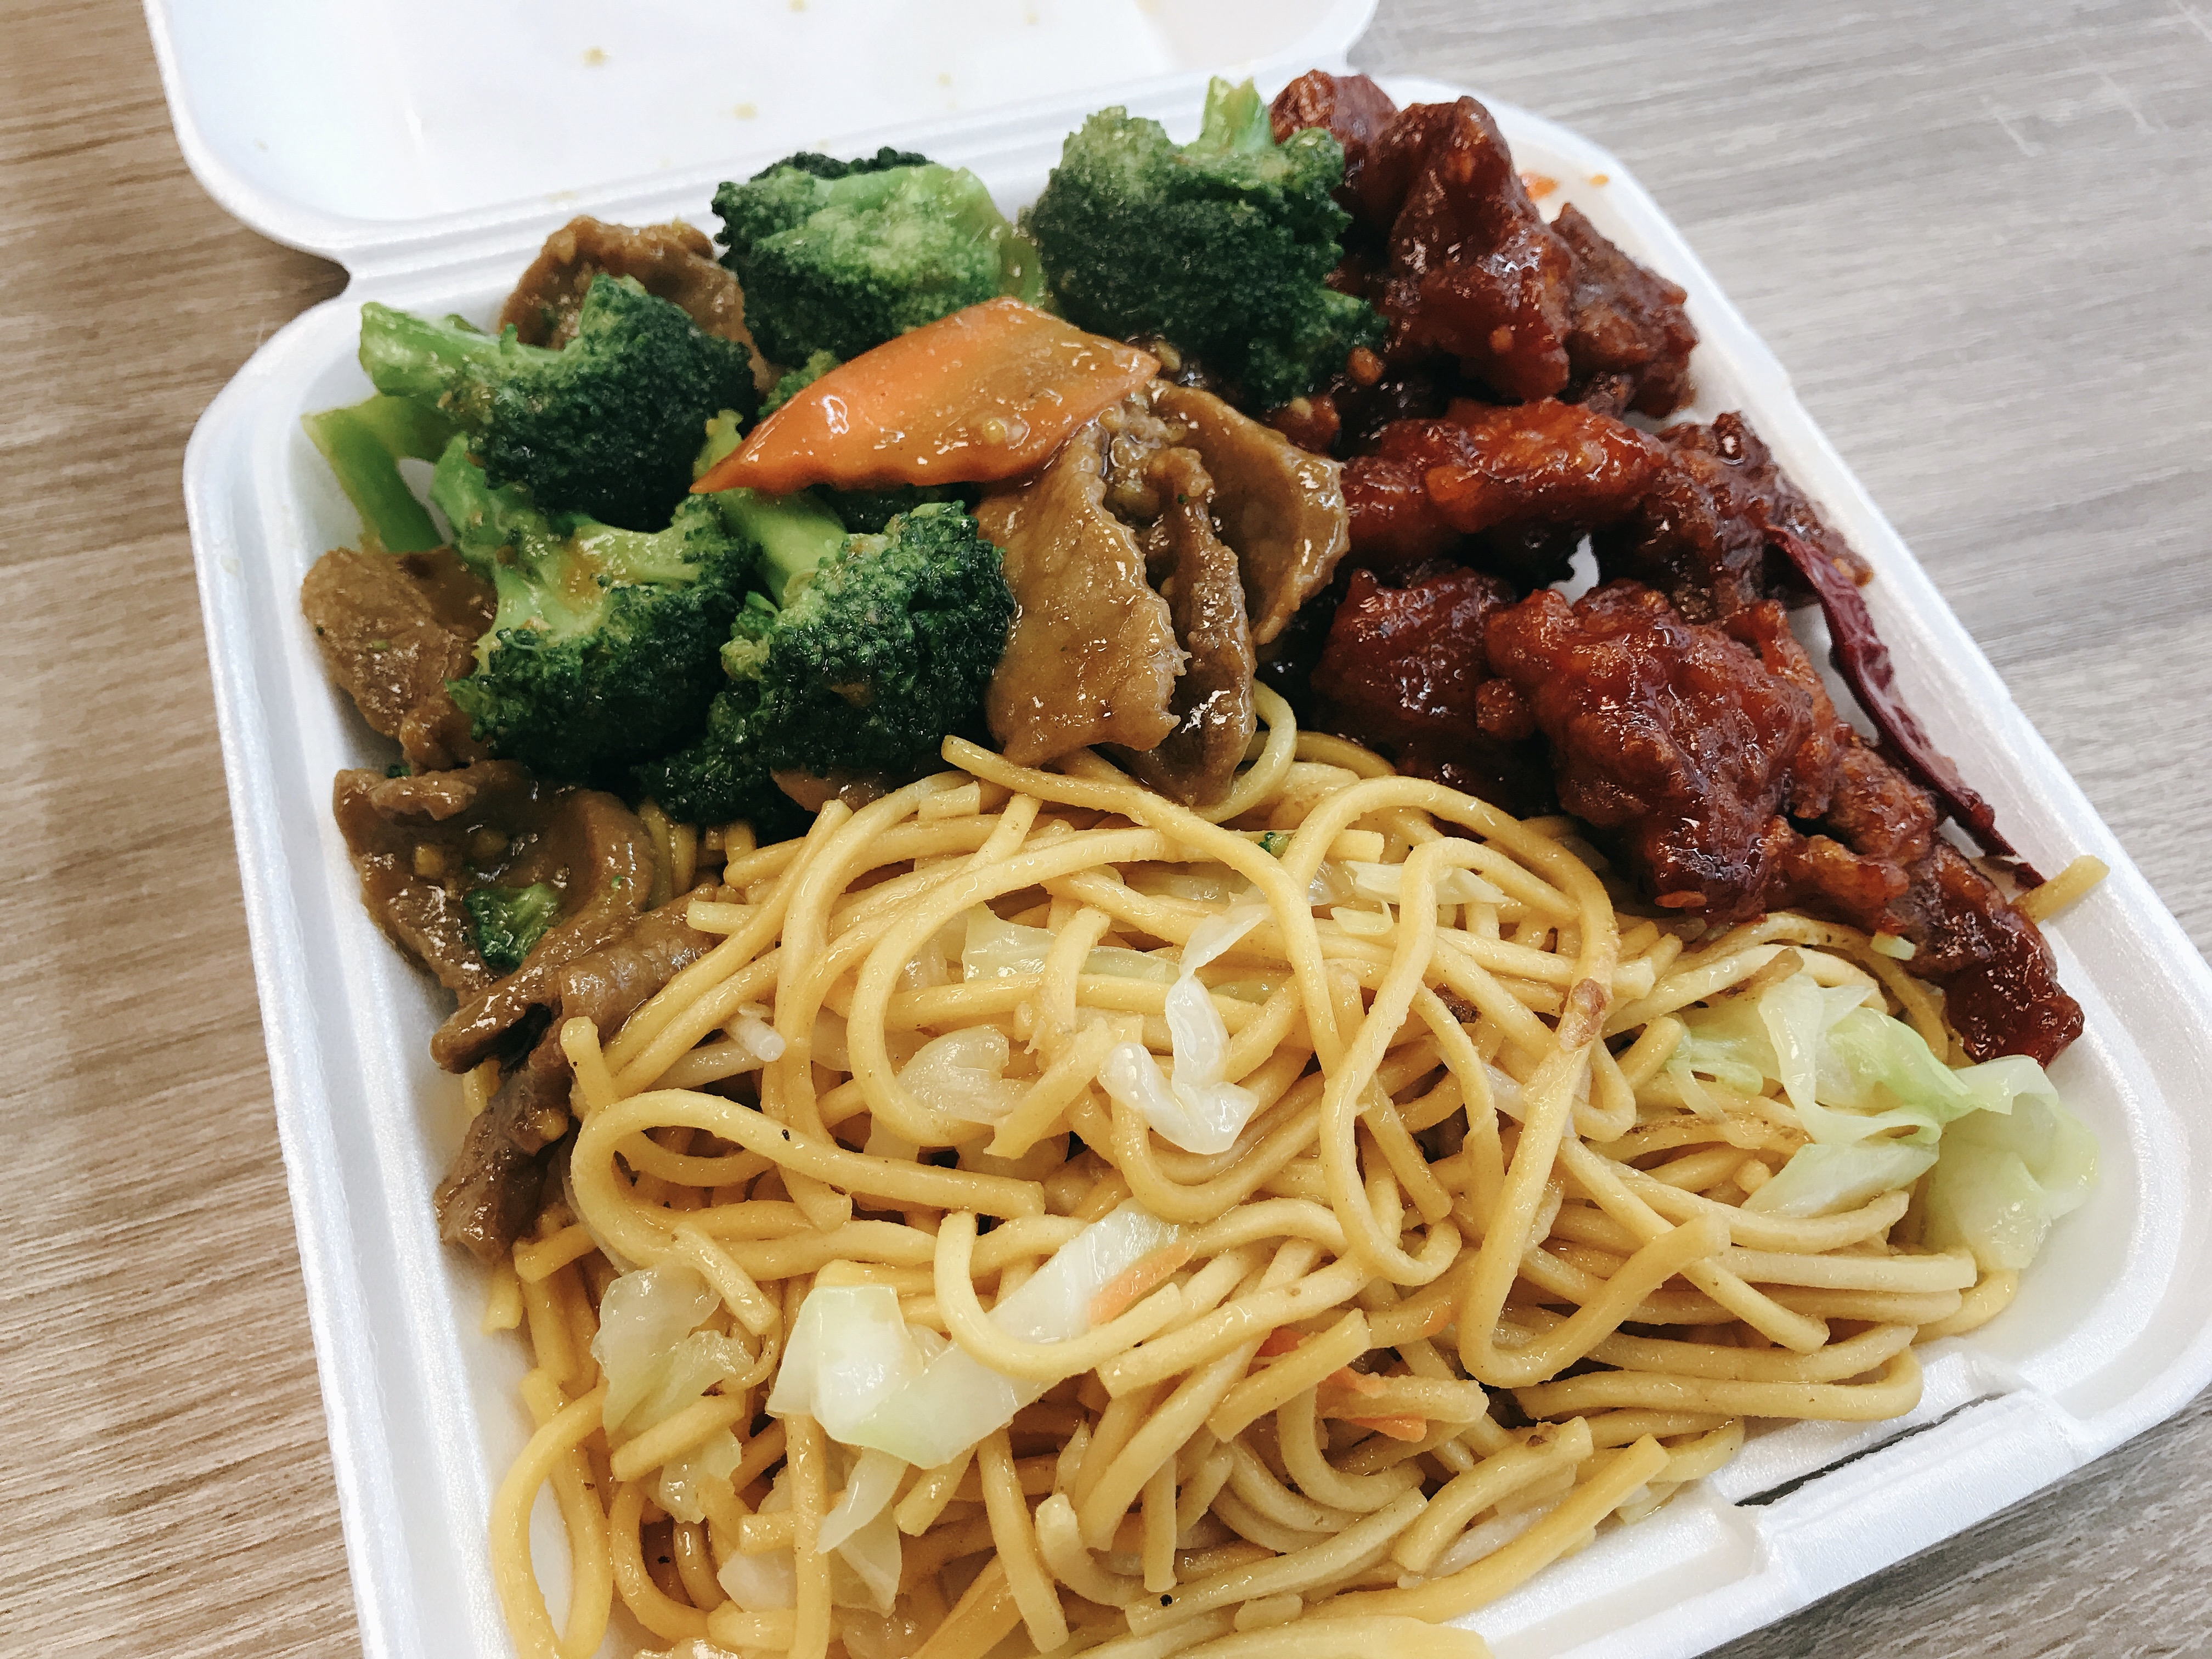 A Photo By Cynthia Rebolledo Of Combo Plate From An Unrelated Chinese Restaurant